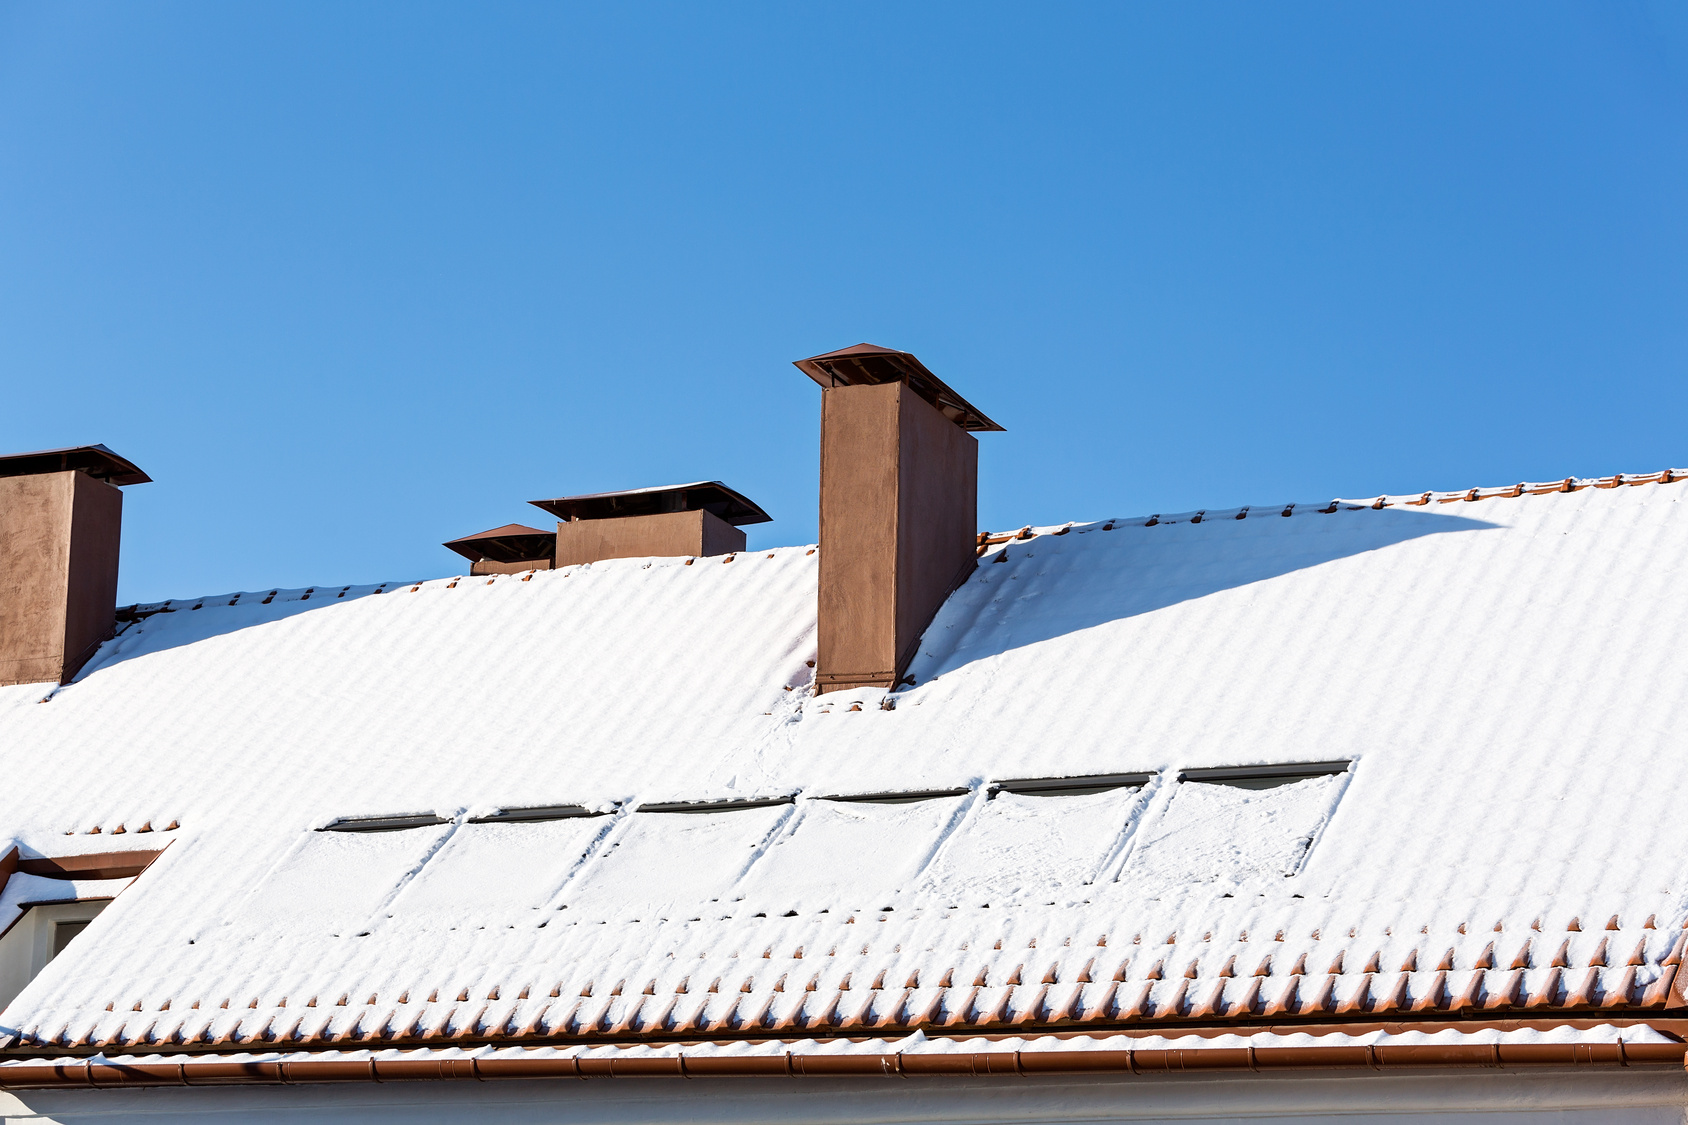 When too much snow accumulates on a rooftop, it can pose a serious hazard to the integrity of the structure. Not just moisture intrusion, but the sheer weight of collected snow can cause rooftops to buckle.